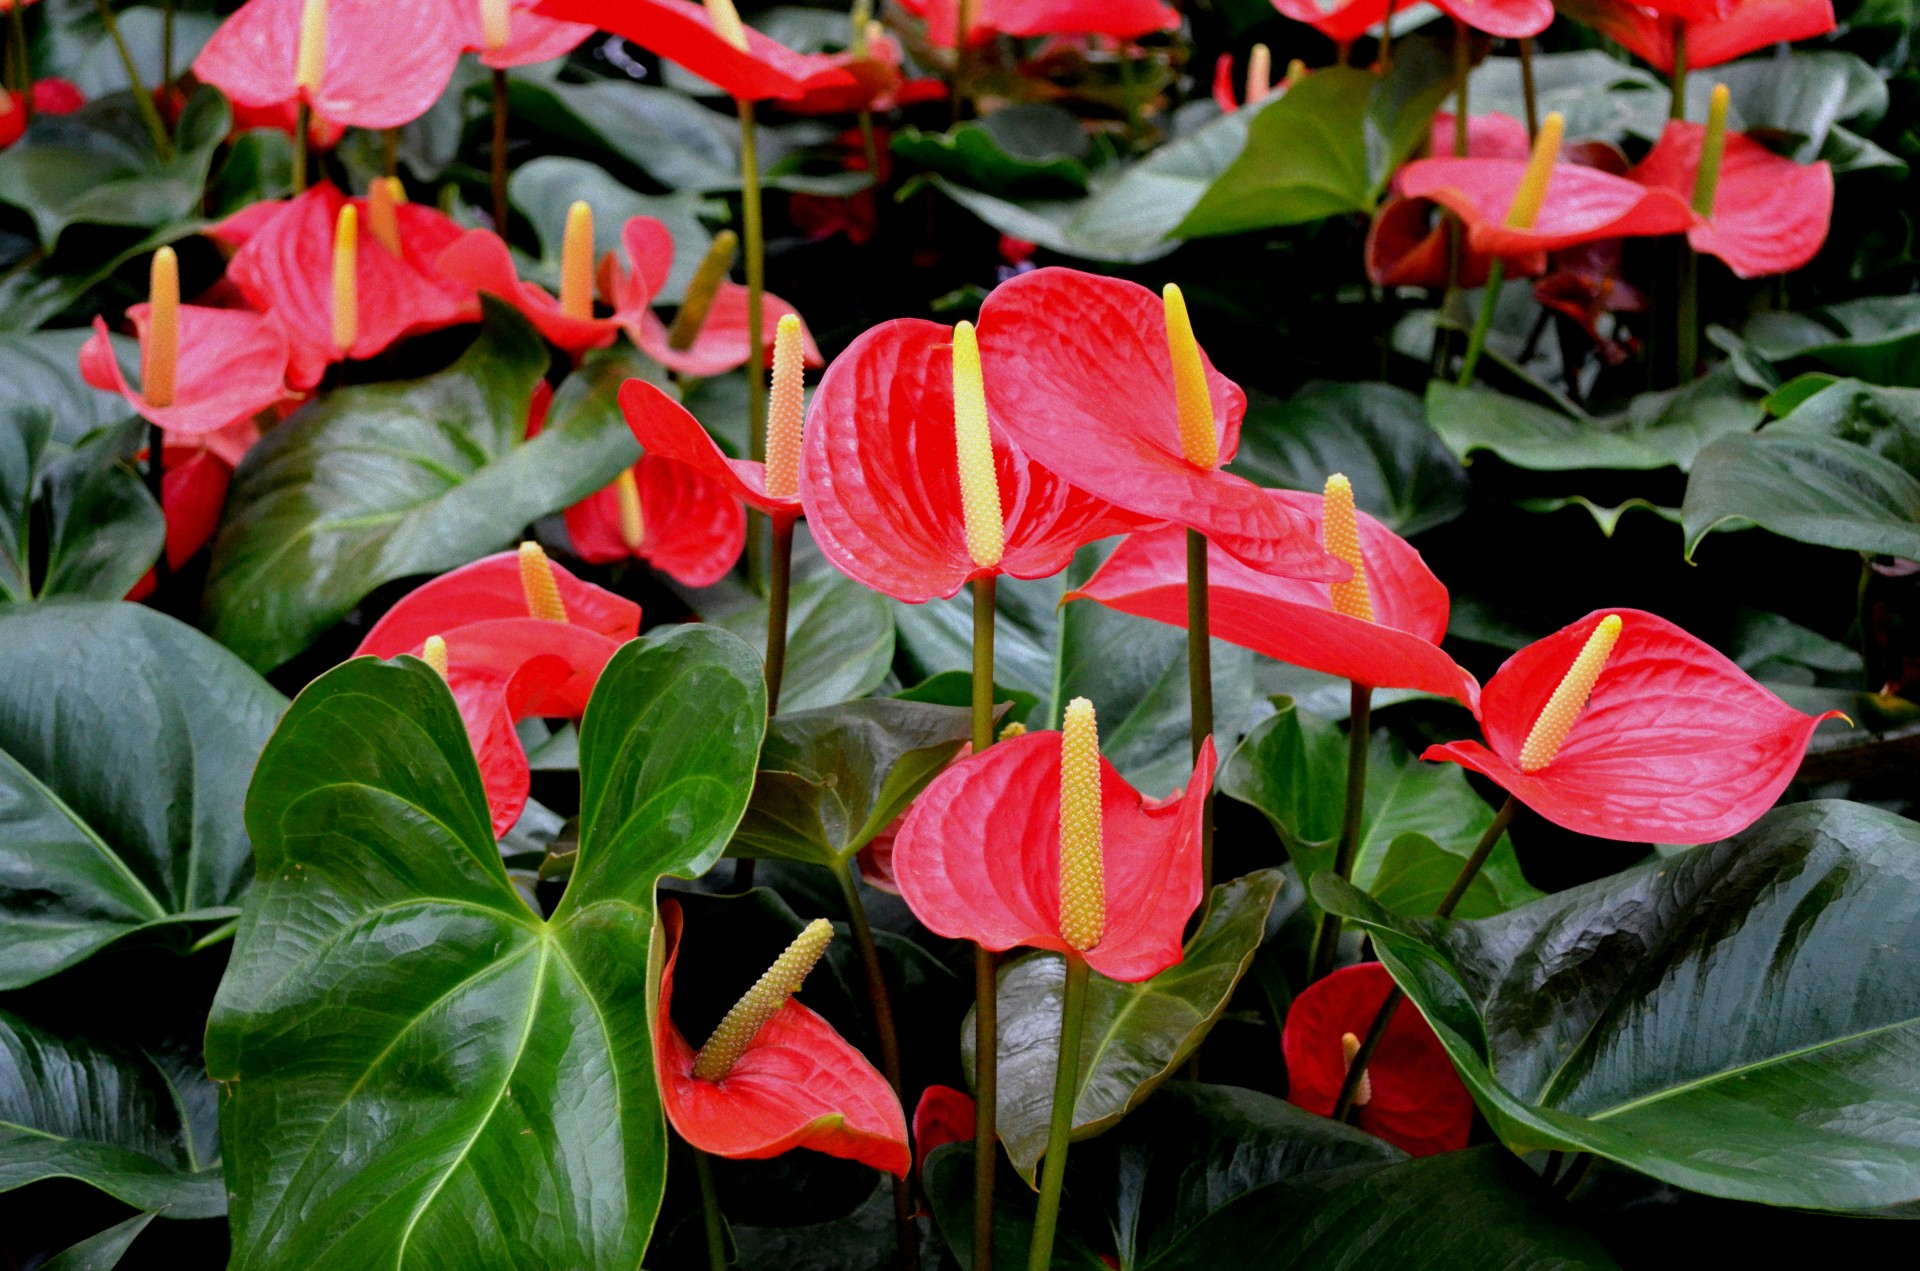 They Have Thick Green Leaves And Heart Shaped Blooms That Can Be Red White Pink Or Blackish Depending On The Variety